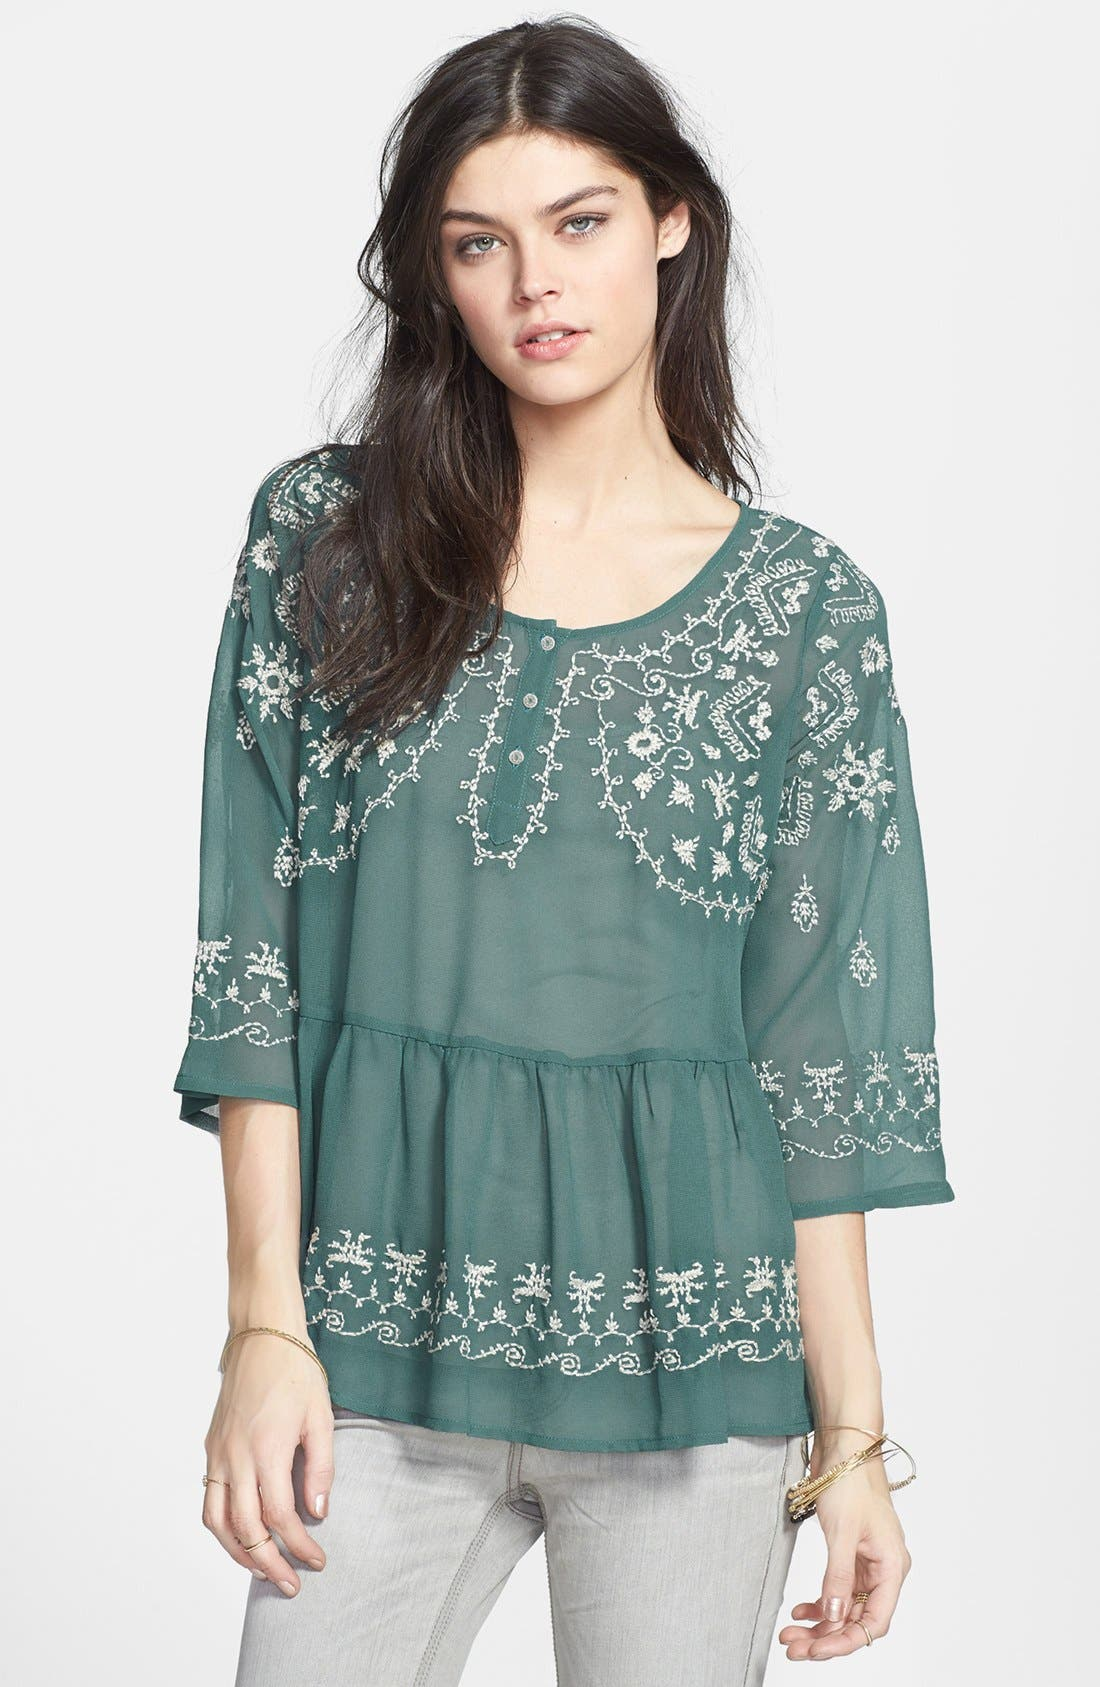 Alternate Image 1 Selected - Free People 'Pennies Sequal' Embroidered Top